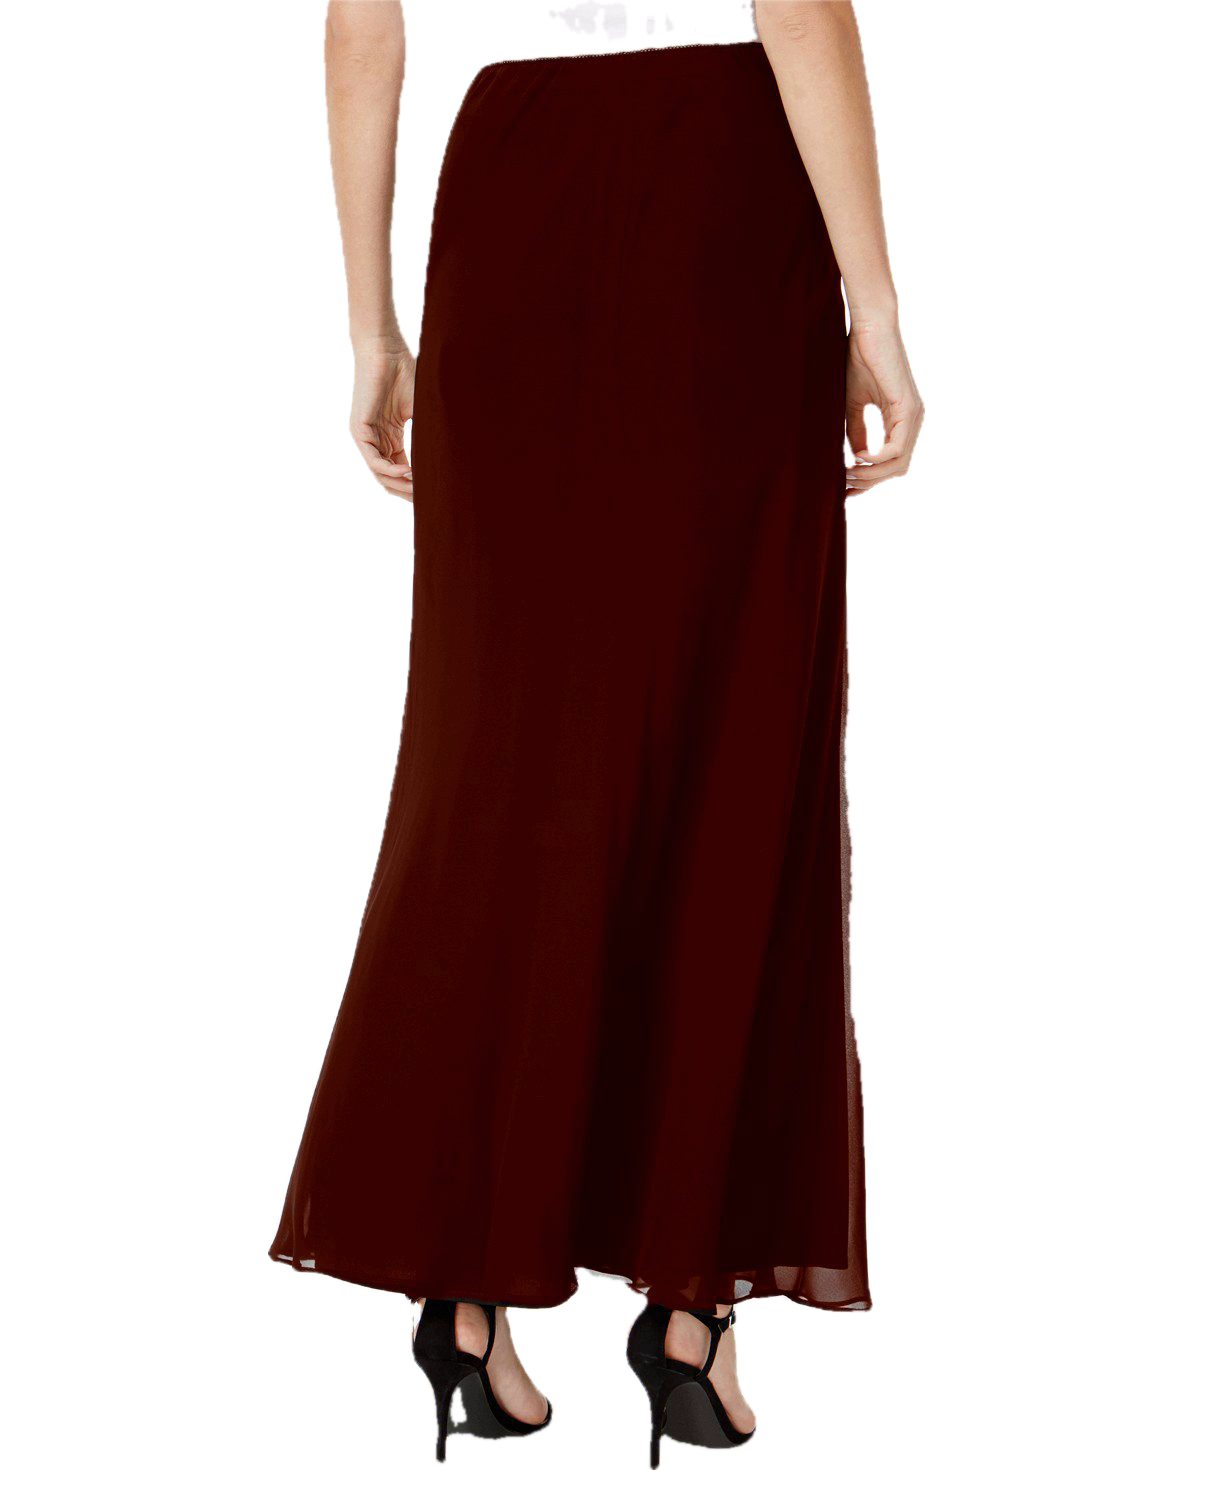 Ankle Length Flared Skirt in Maroon